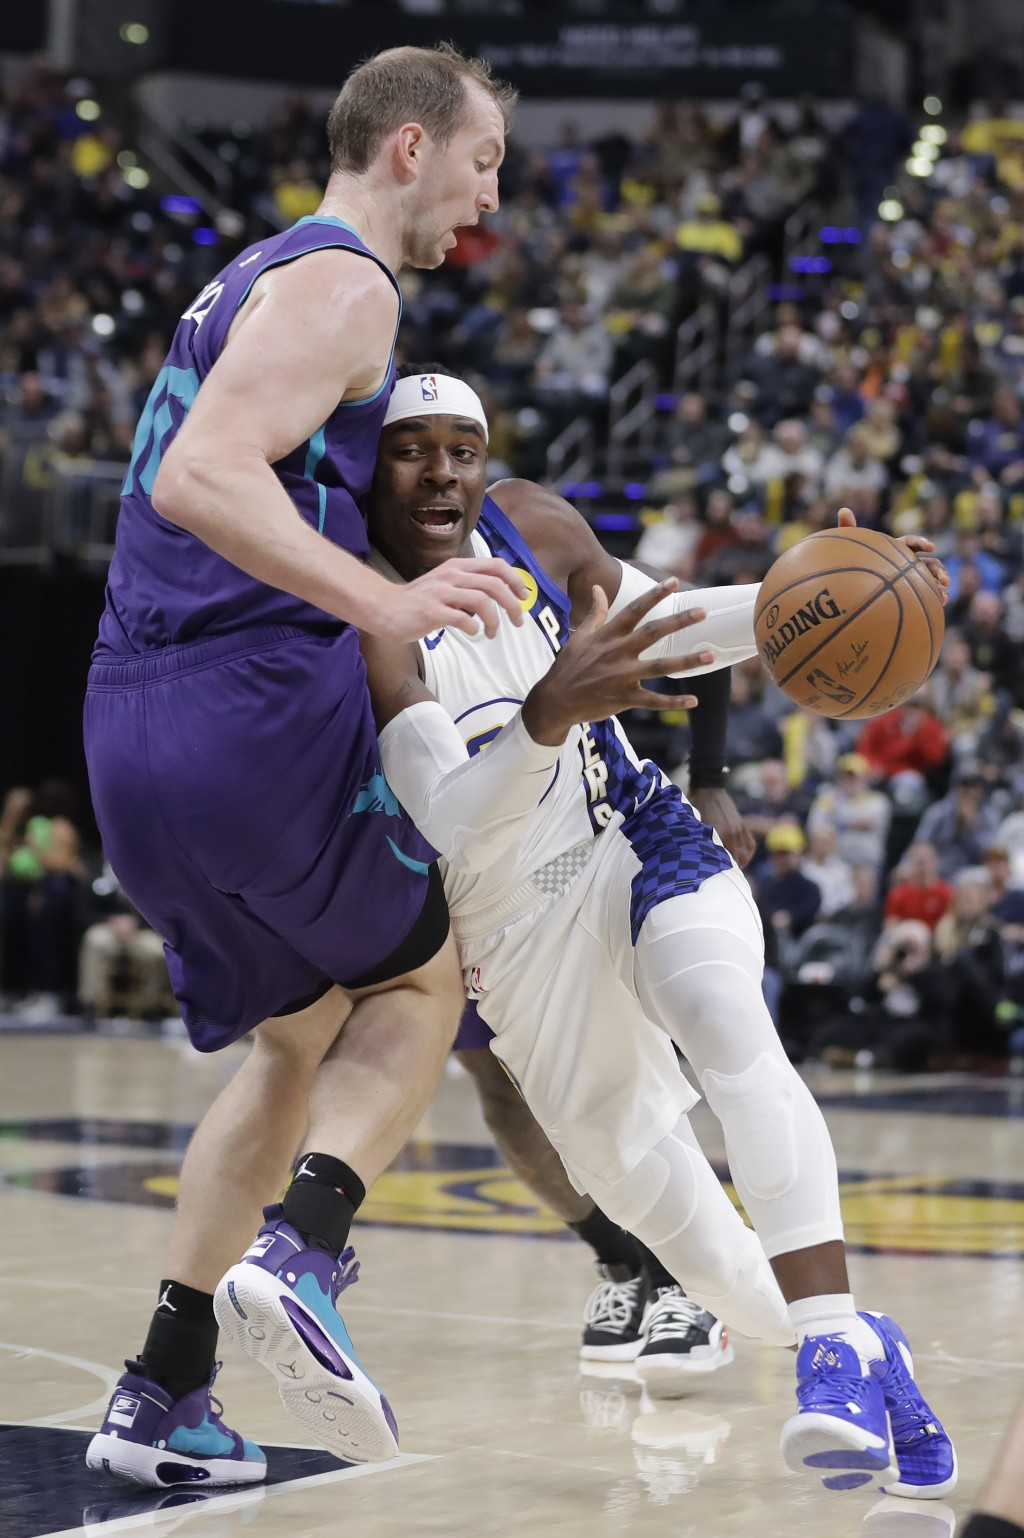 Indiana Pacers' Aaron Holiday, right, drives to the basket against Charlotte Hornets' Cody Zeller, left, during the second half of an NBA basketball g...